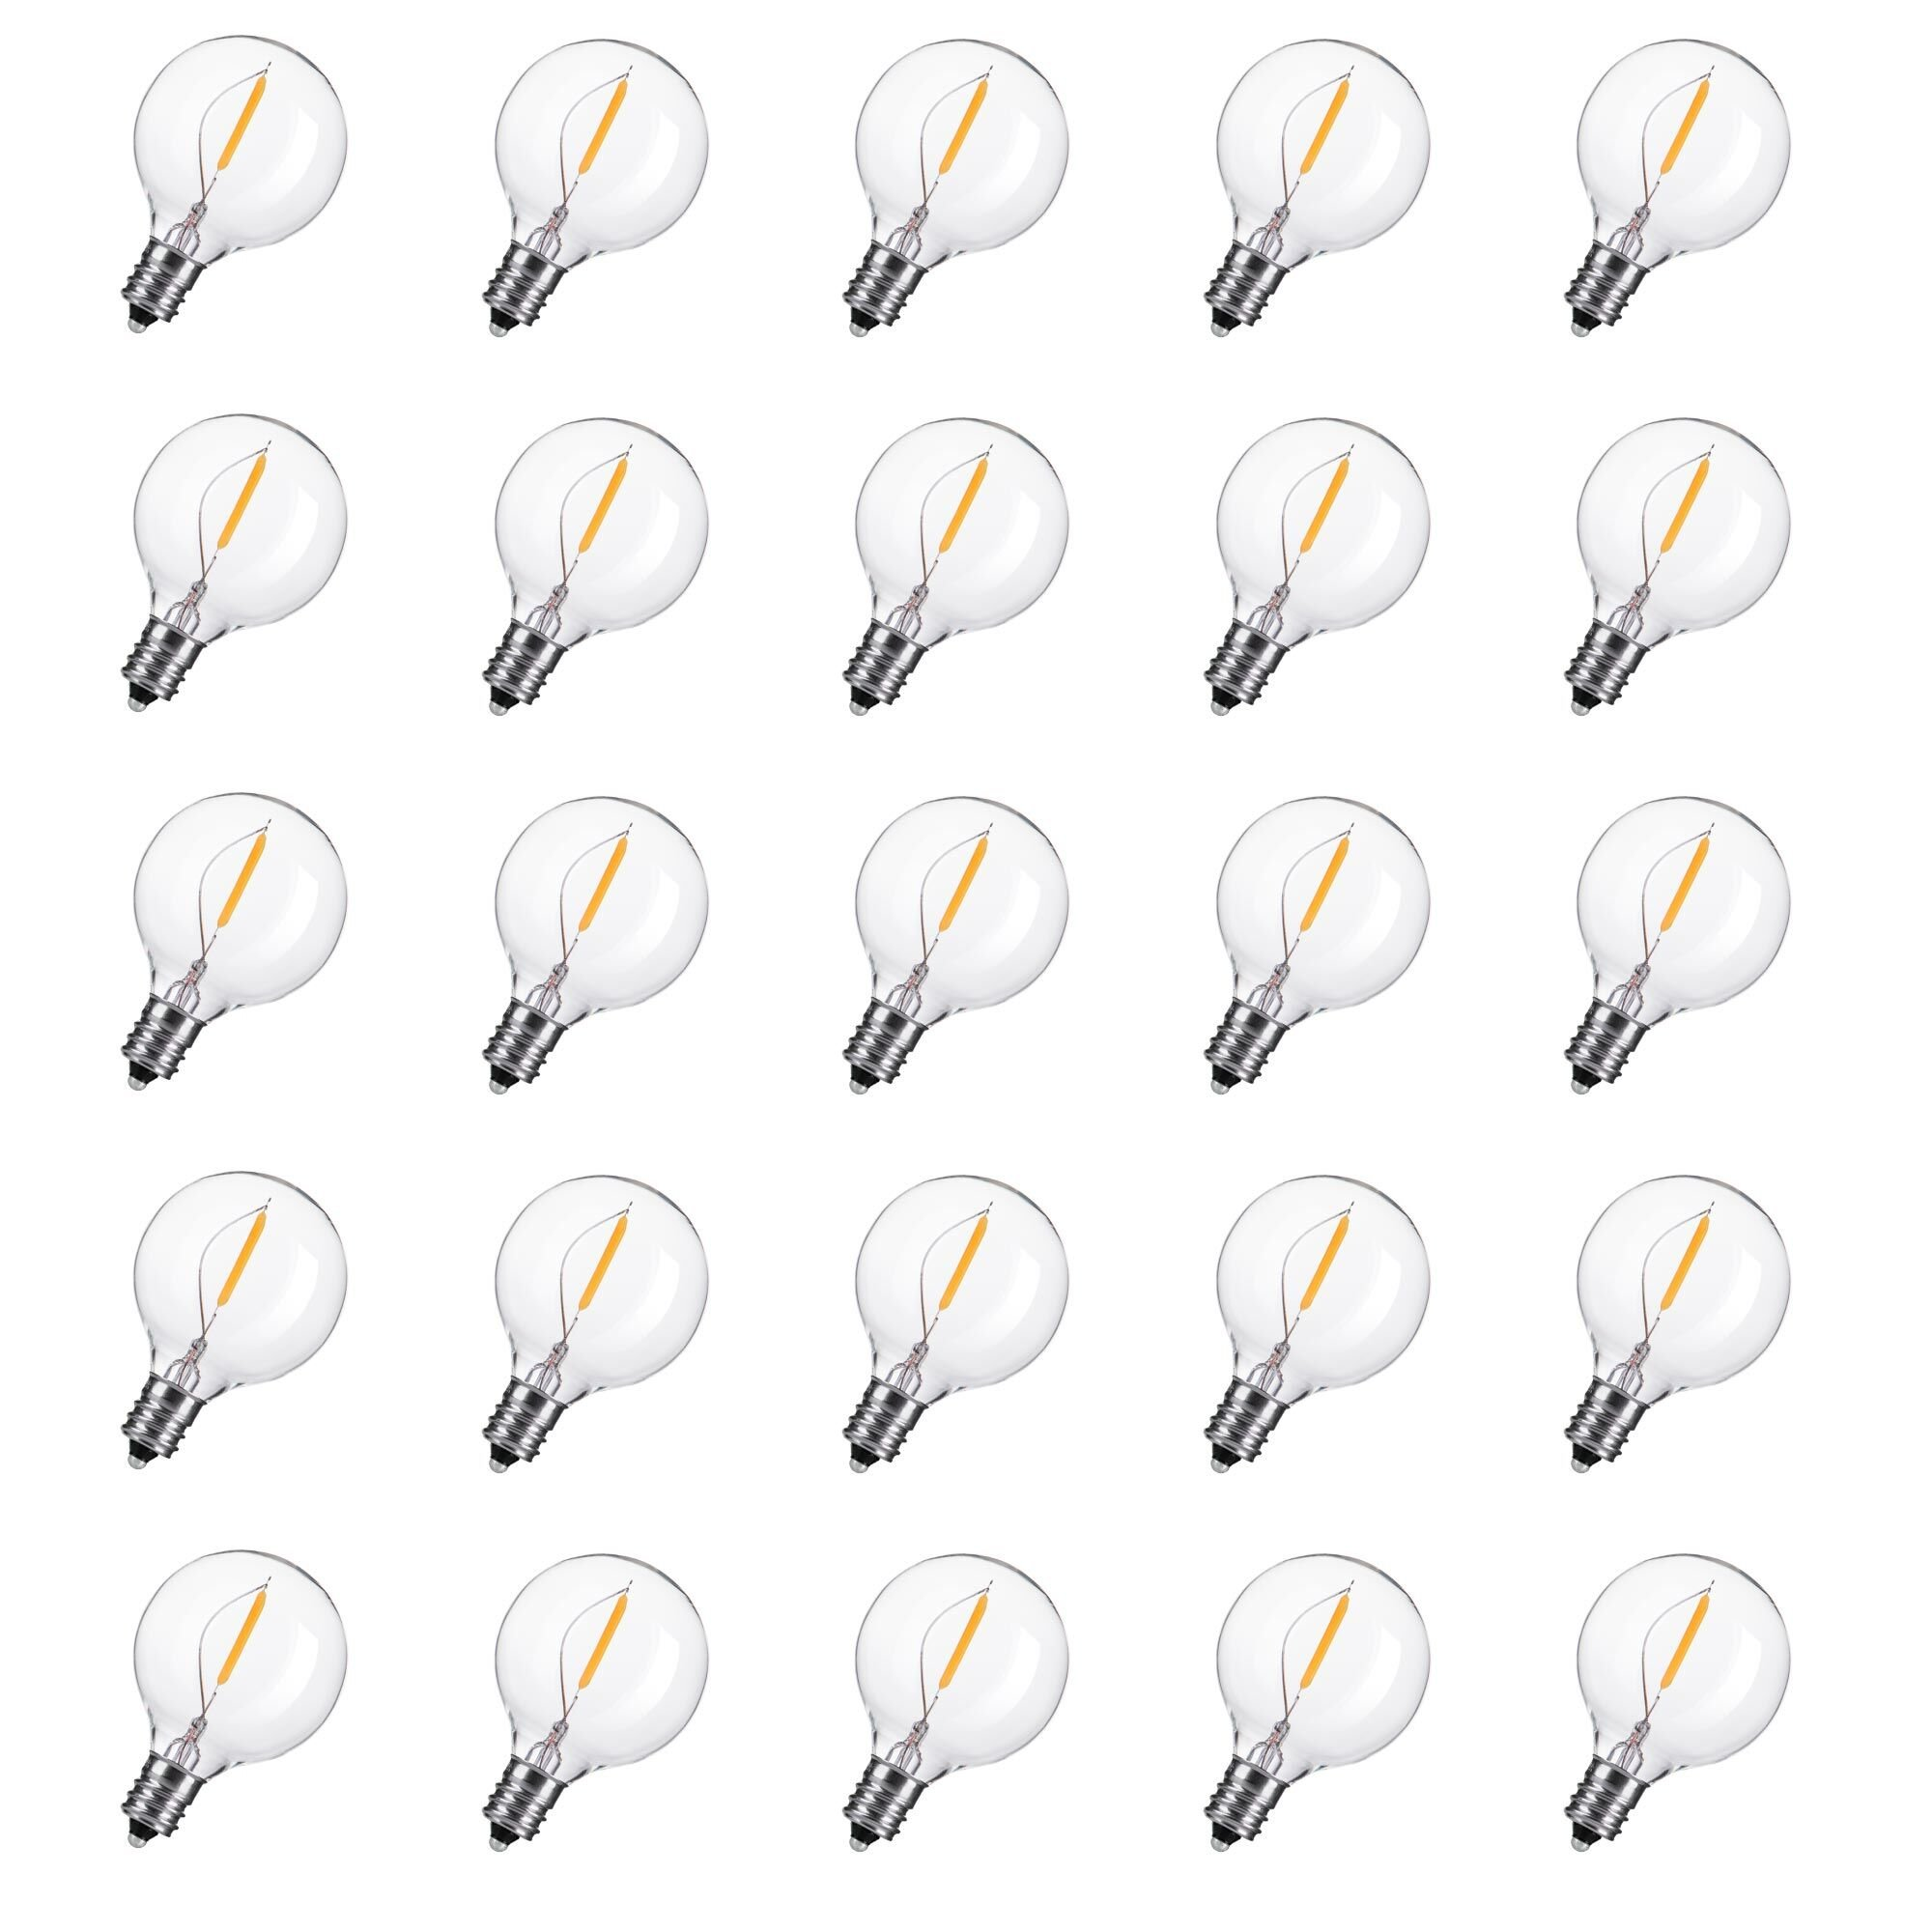 25-Pack LED G40 Replacement Bulbs, E12 Screw Base LED Globe Light Bulbs for Patio String Lights, Equivalent to 5-Watt Clear Light Bulbs